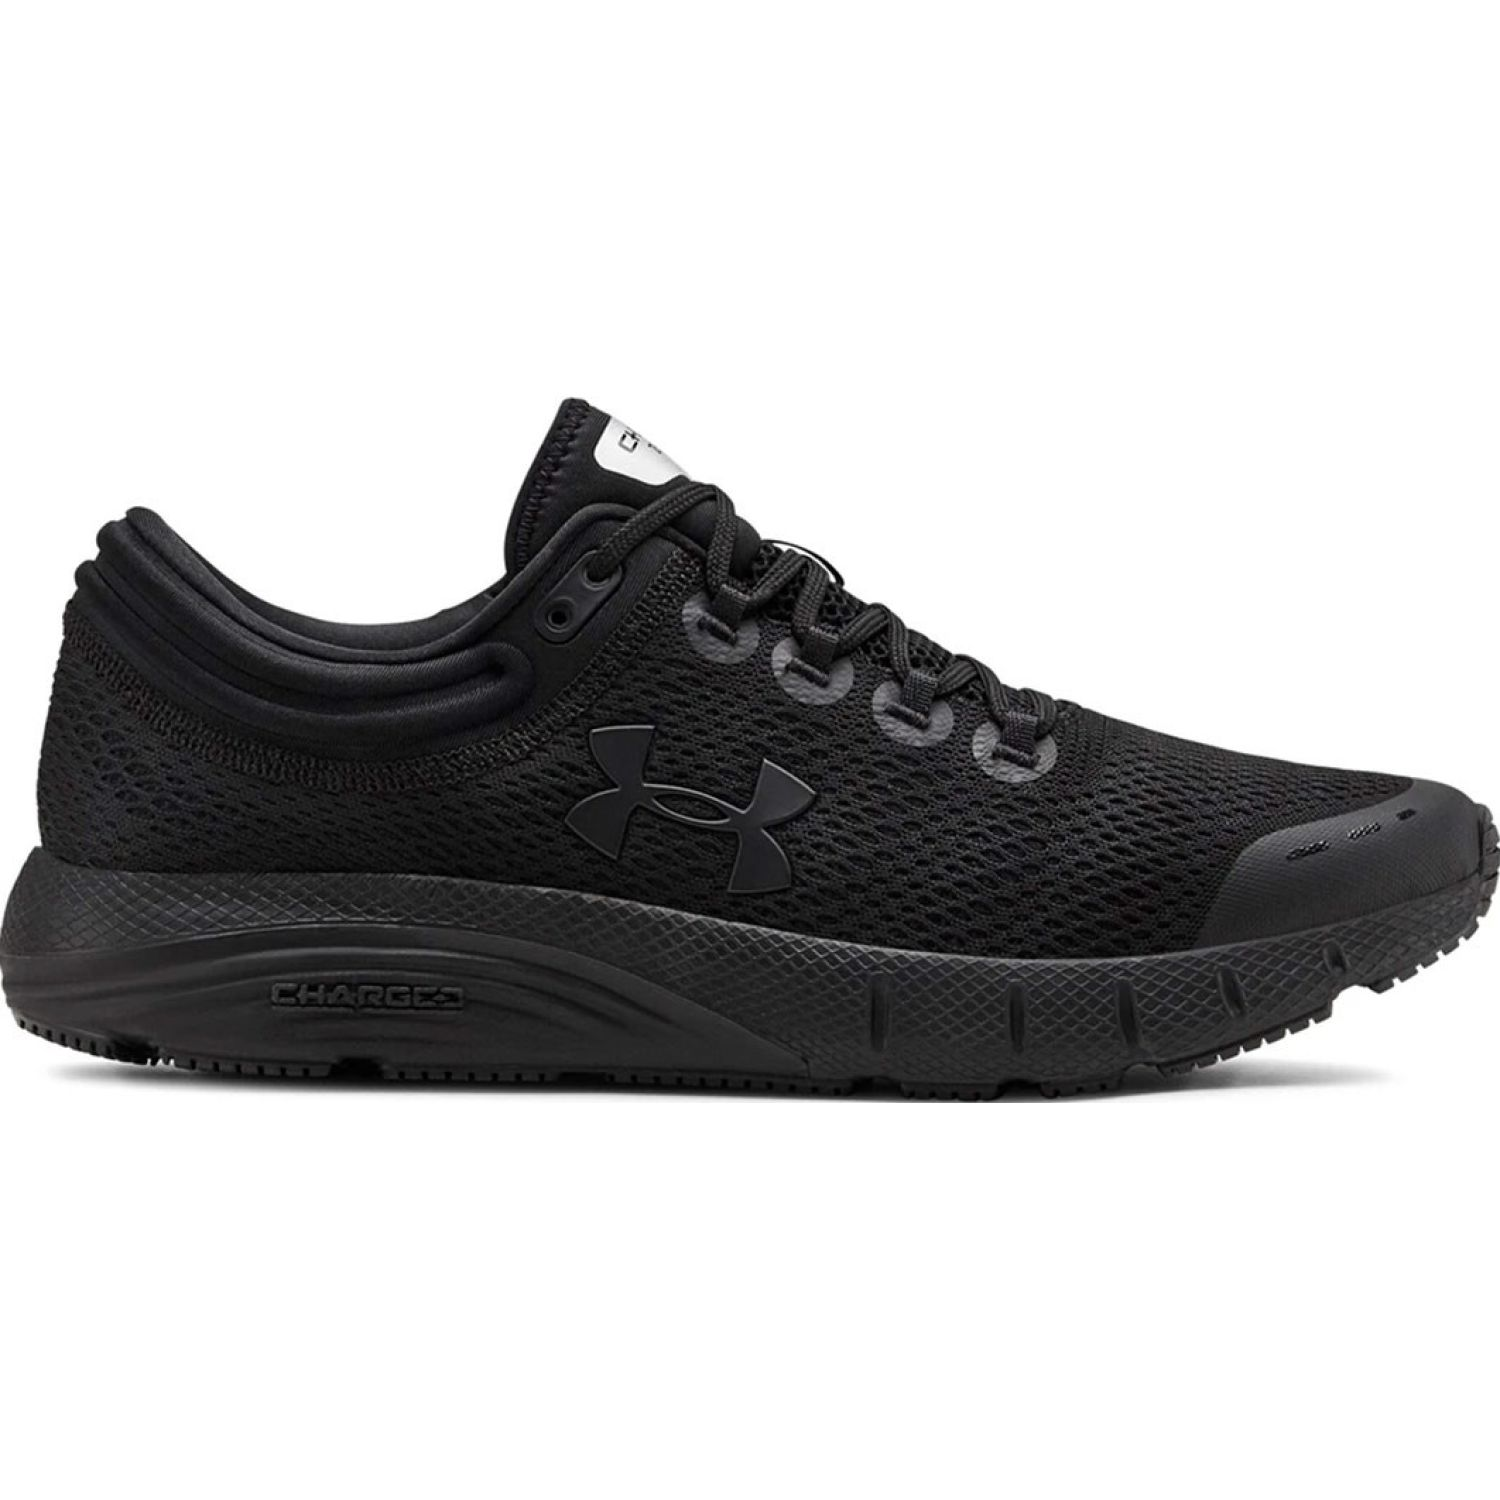 Under Armour Ua Charged Bandit 5 Negro Correr por carretera